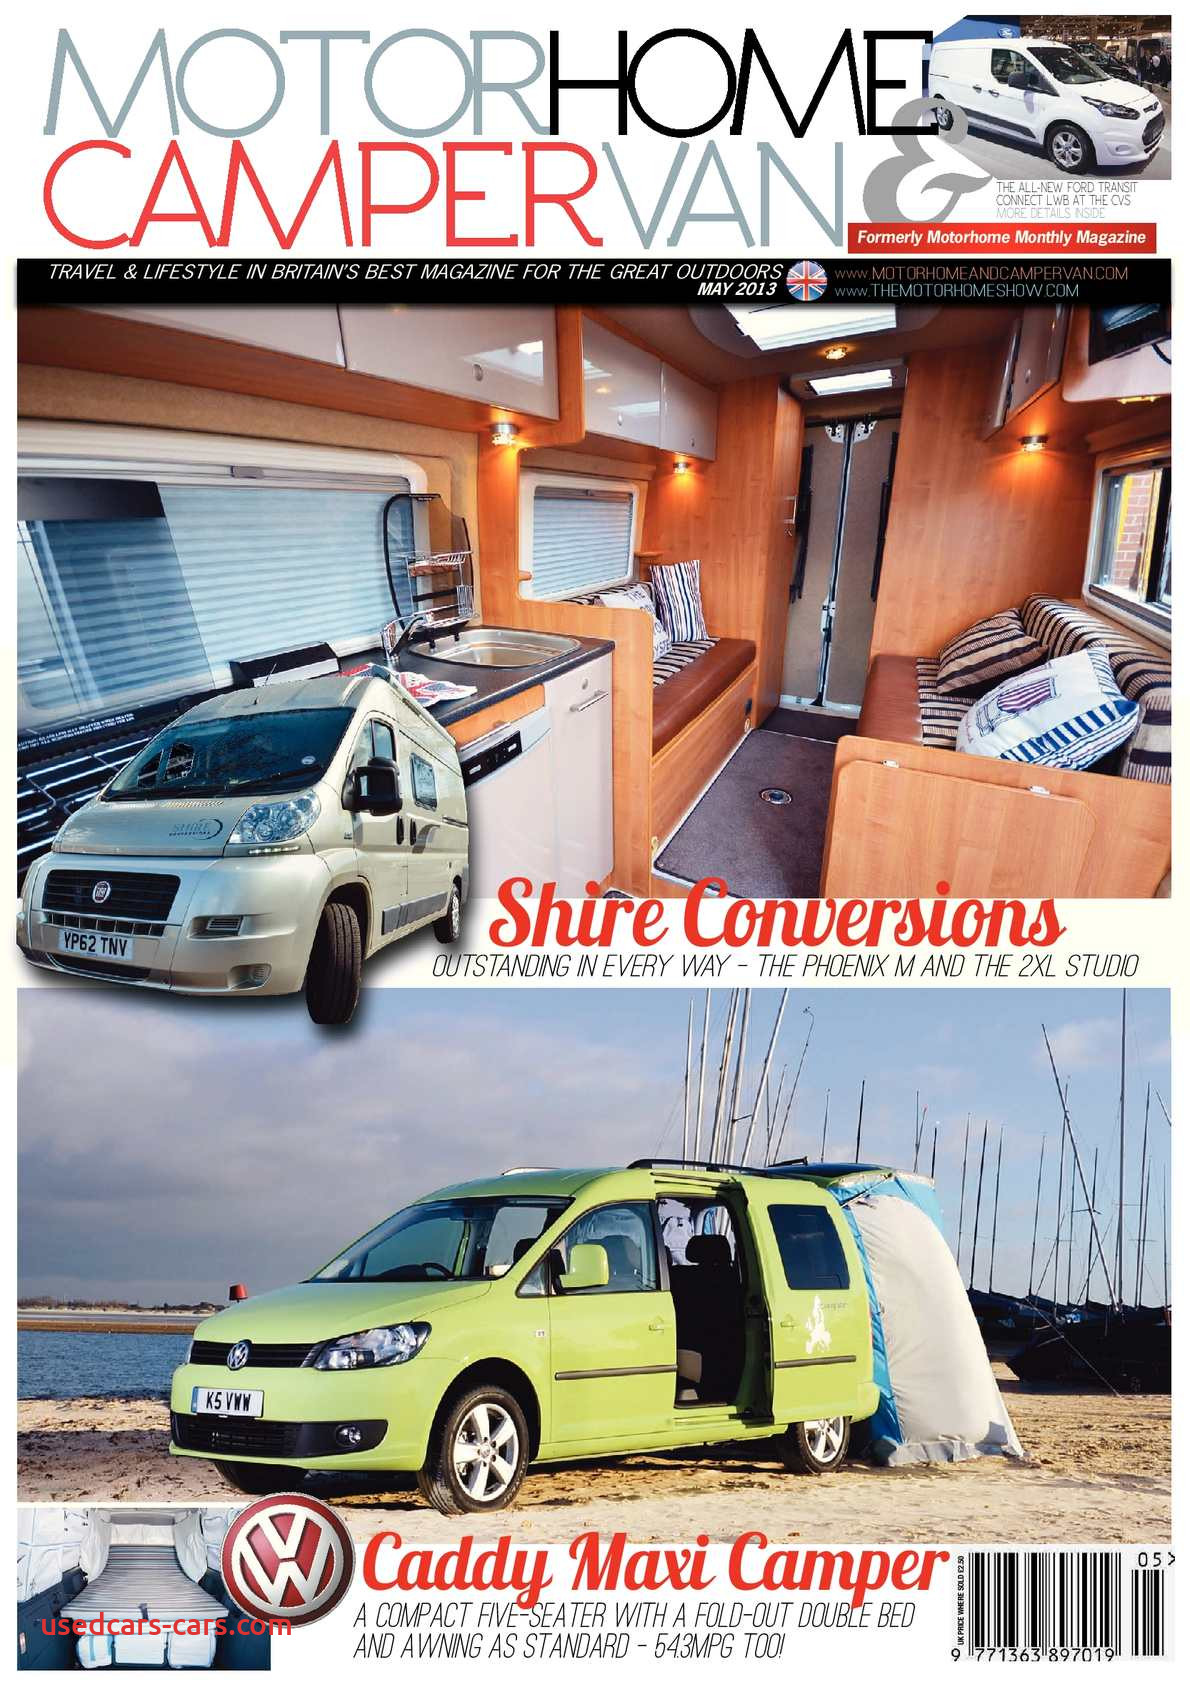 Used Cars for Sale Grimsby Awesome Calaméo May 2013 Motorhome & Campervan